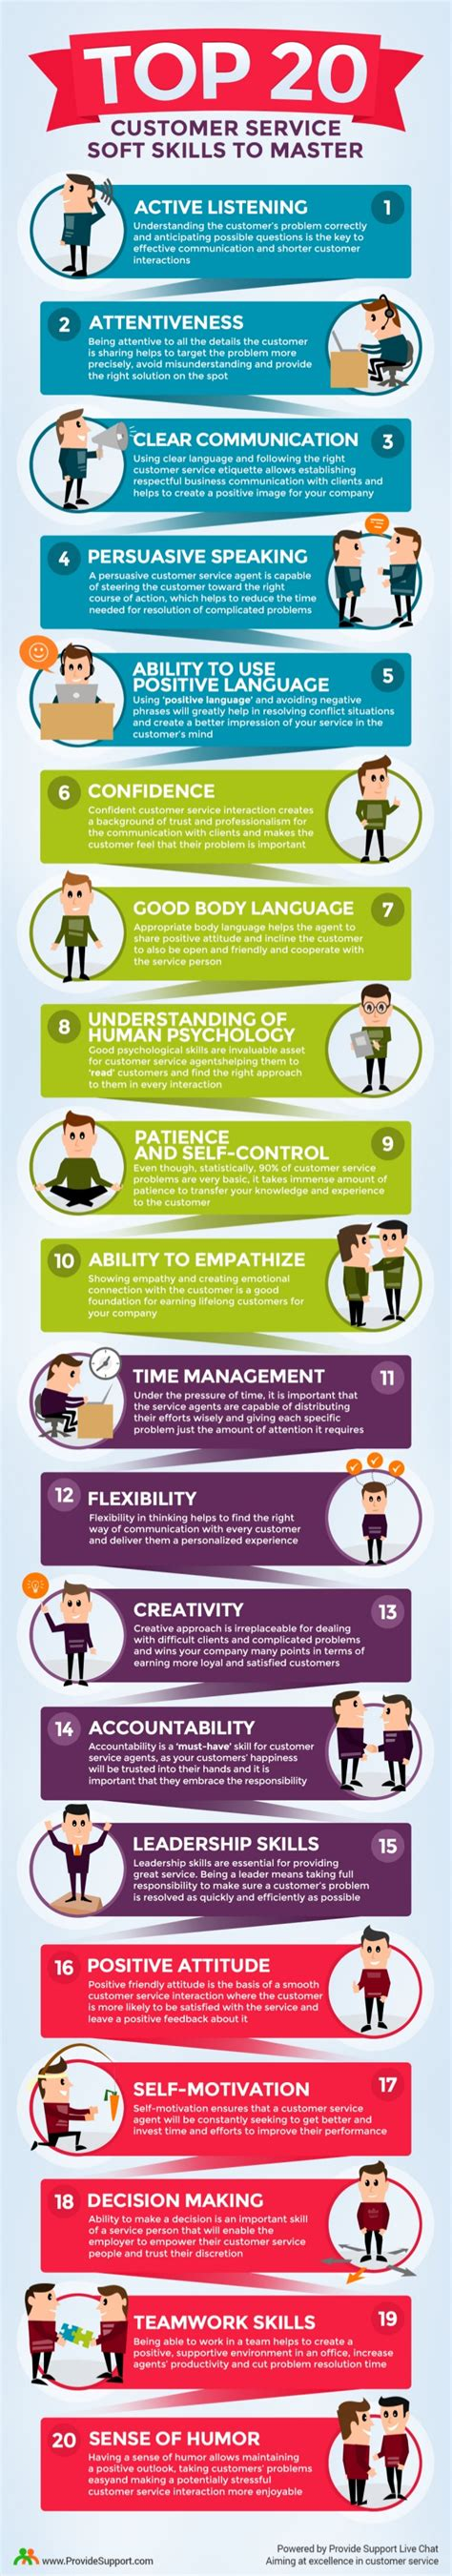 20 critical customer service skills all sales reps should master infographic